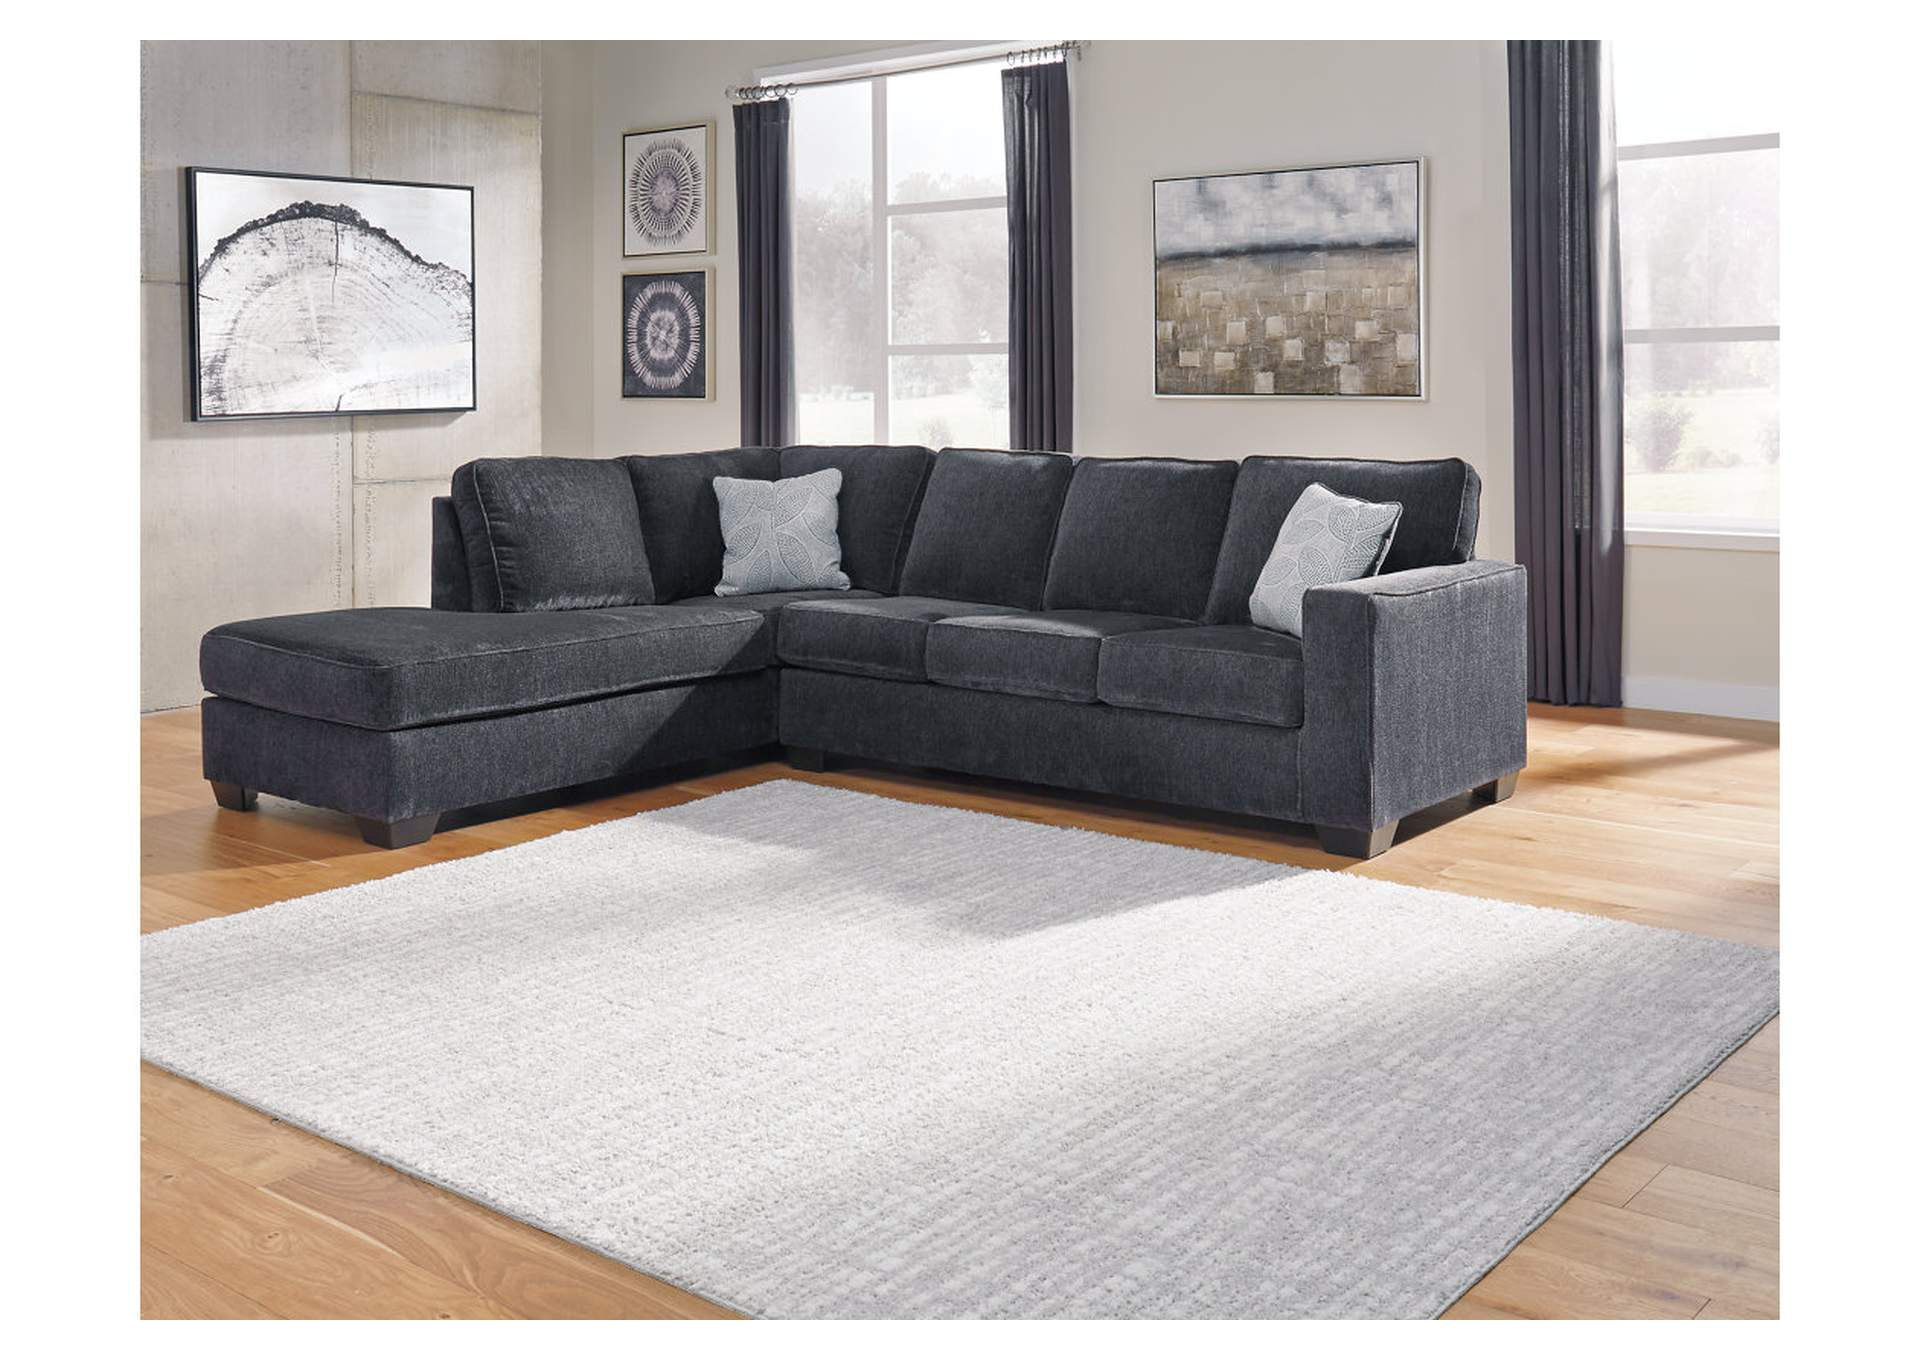 Altari Slate Right-Arm Facing Chaise Sectional,Signature Design By Ashley